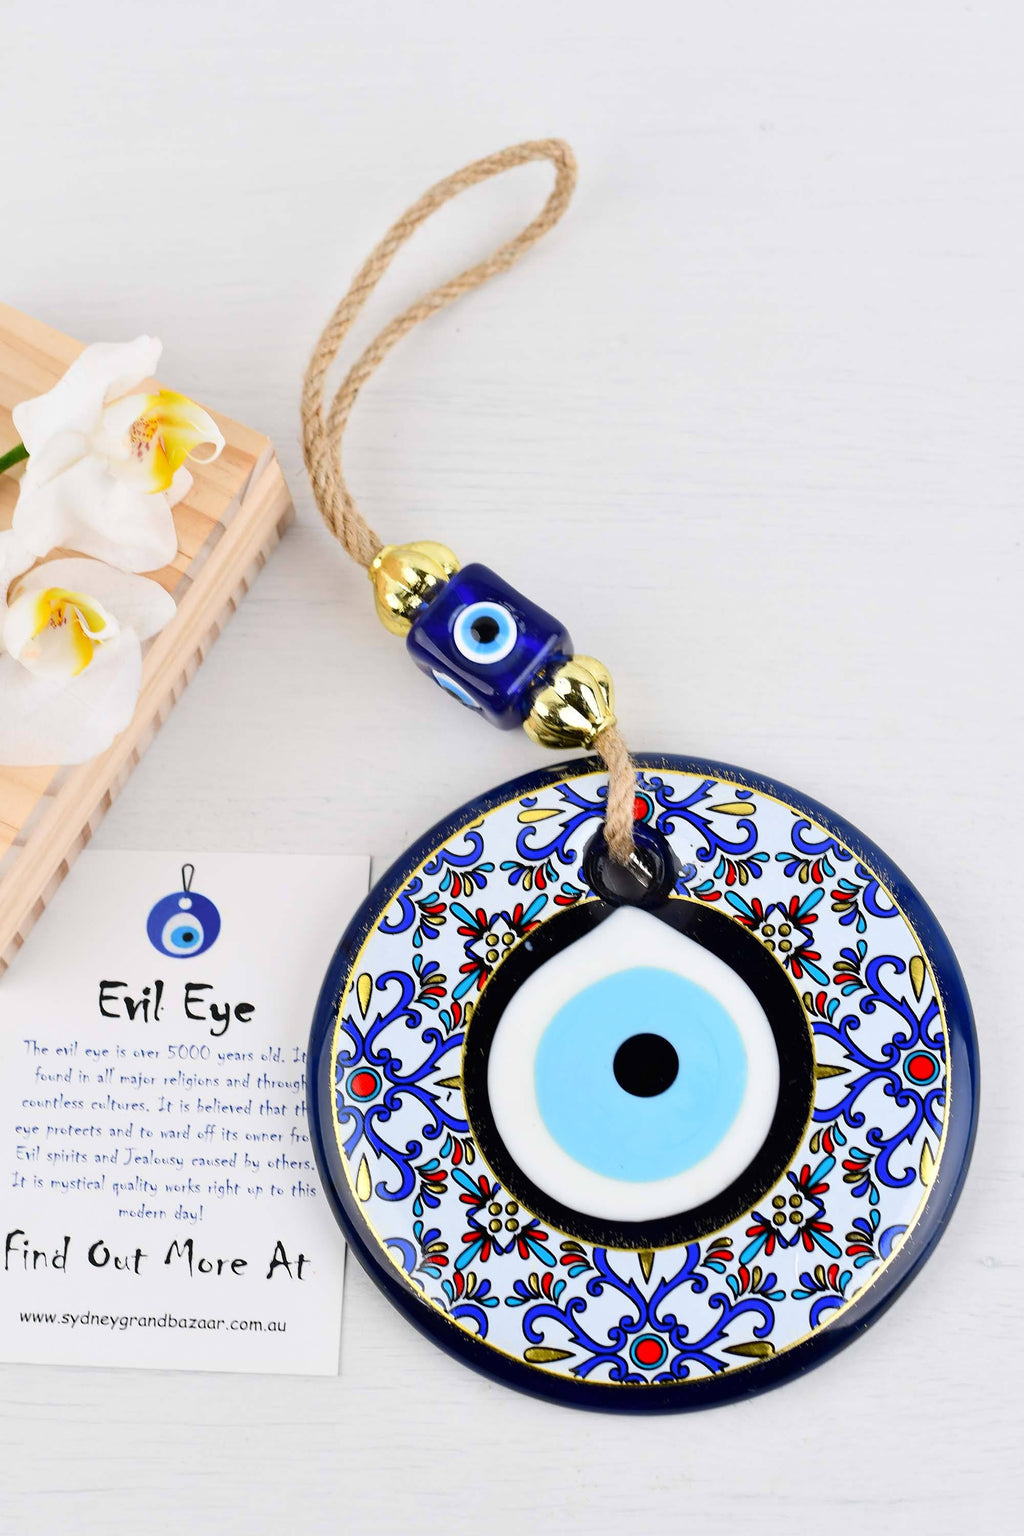 Evil Eye Glass Beads Multicoloured Tile Printed Wall Hanging 2 Evil Eye Sydney Grand Bazaar